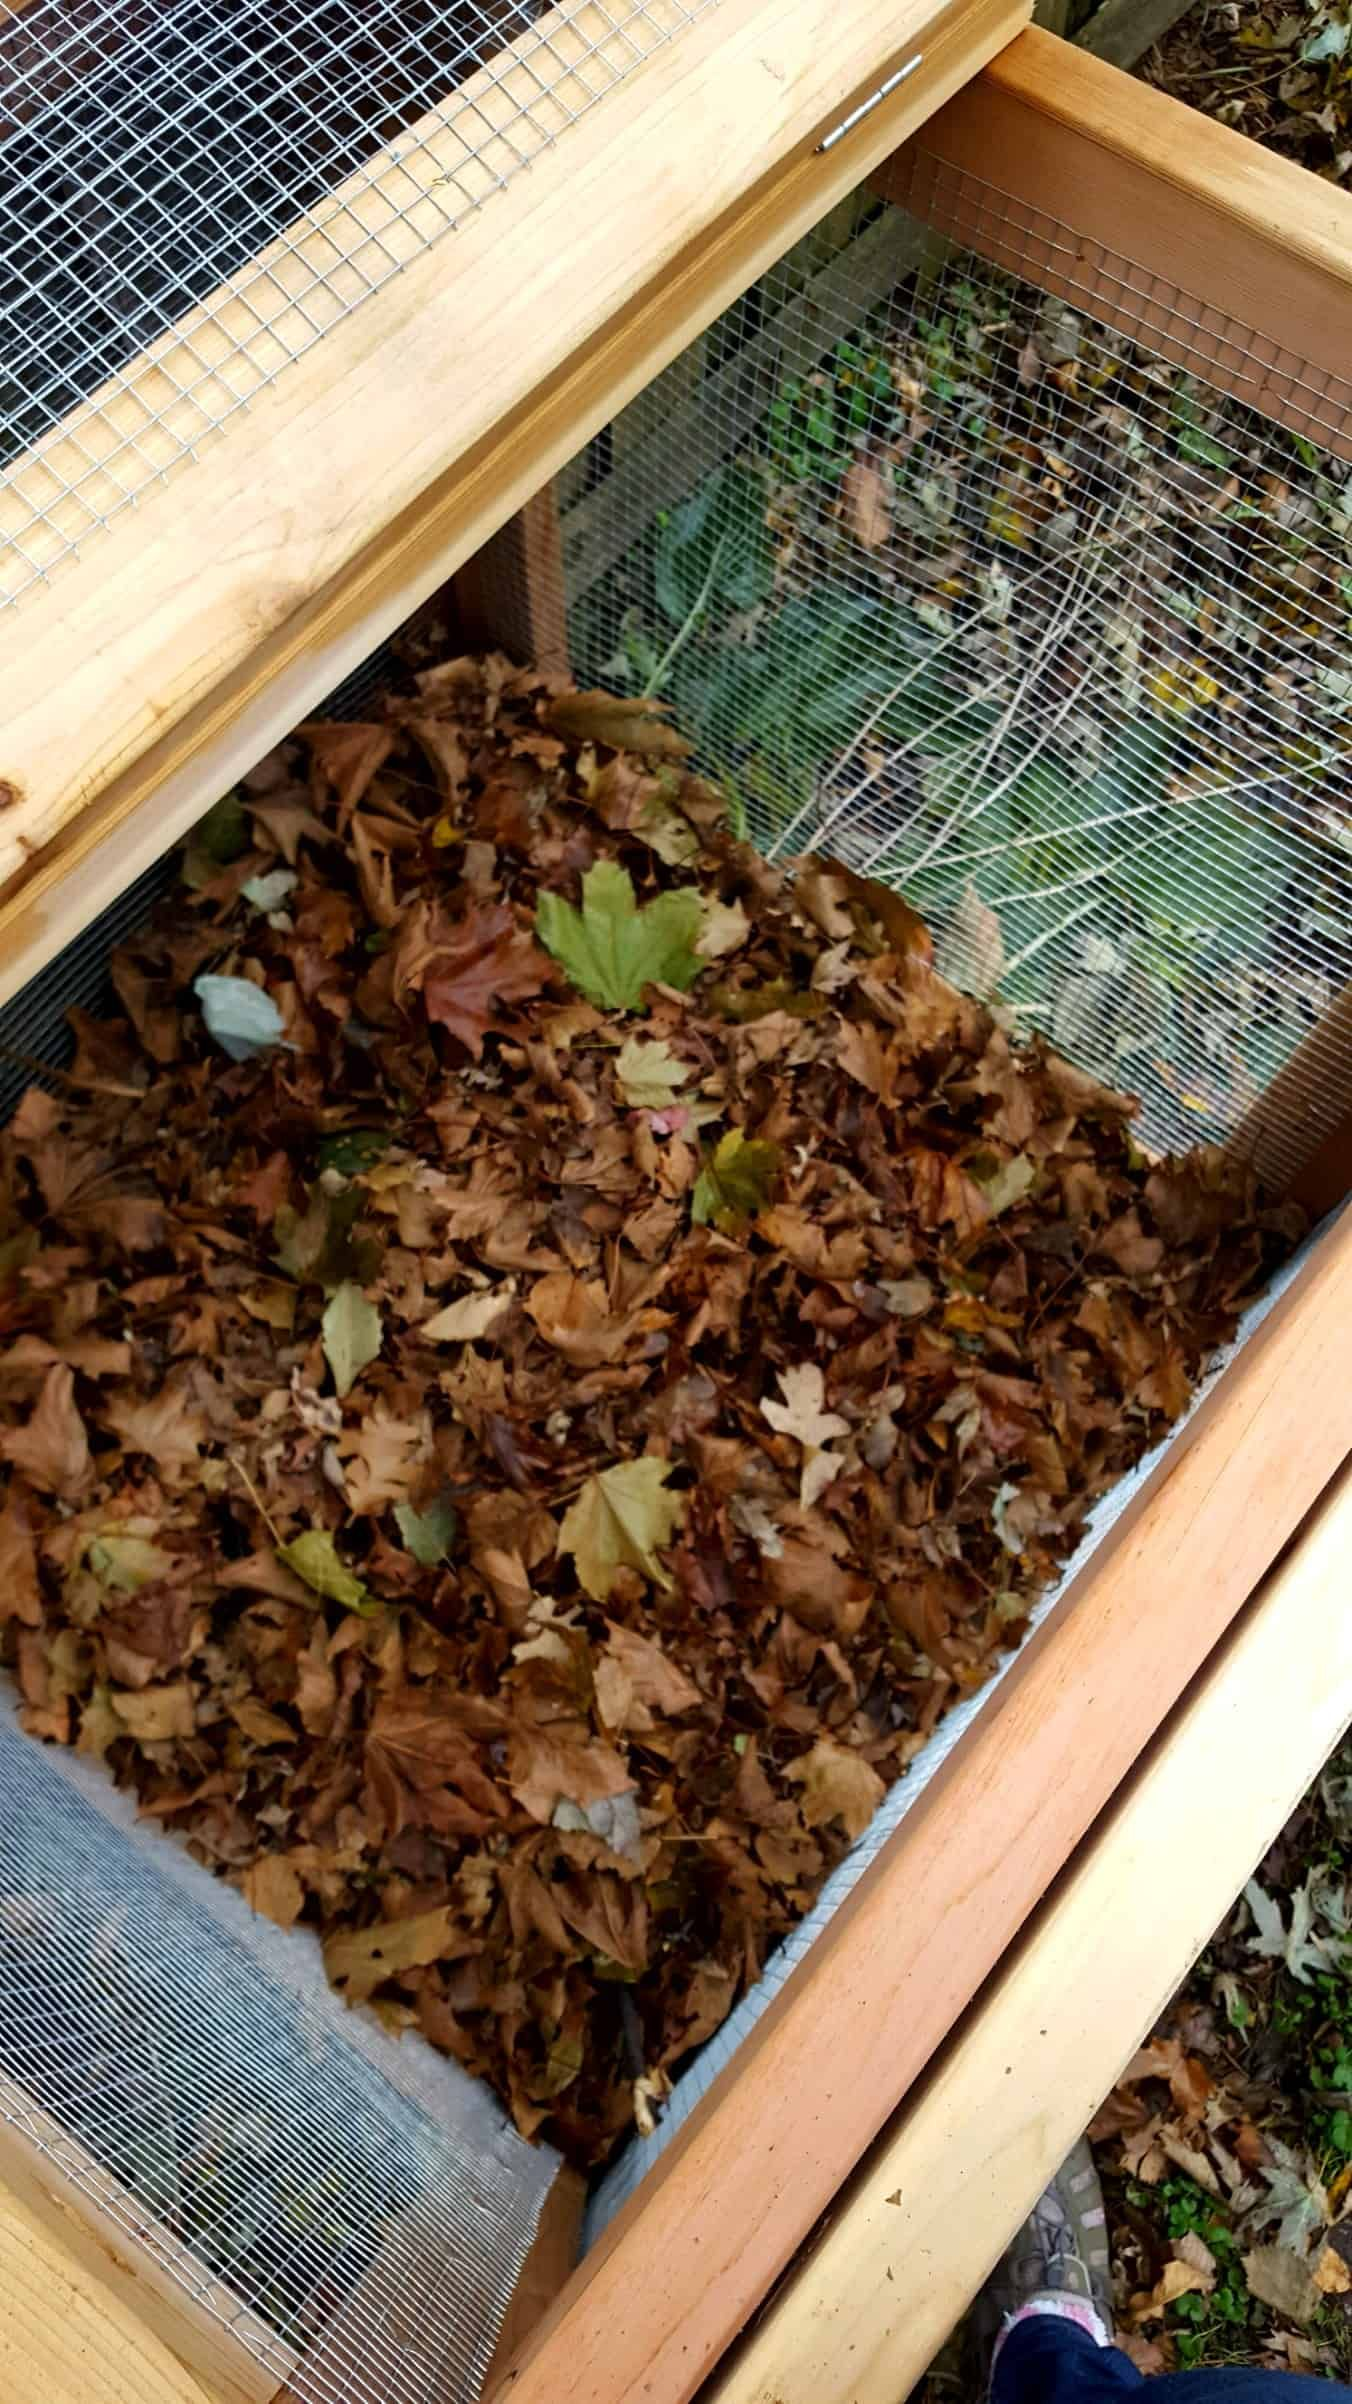 The Ultimate Guide To Composting In Any Sized Space